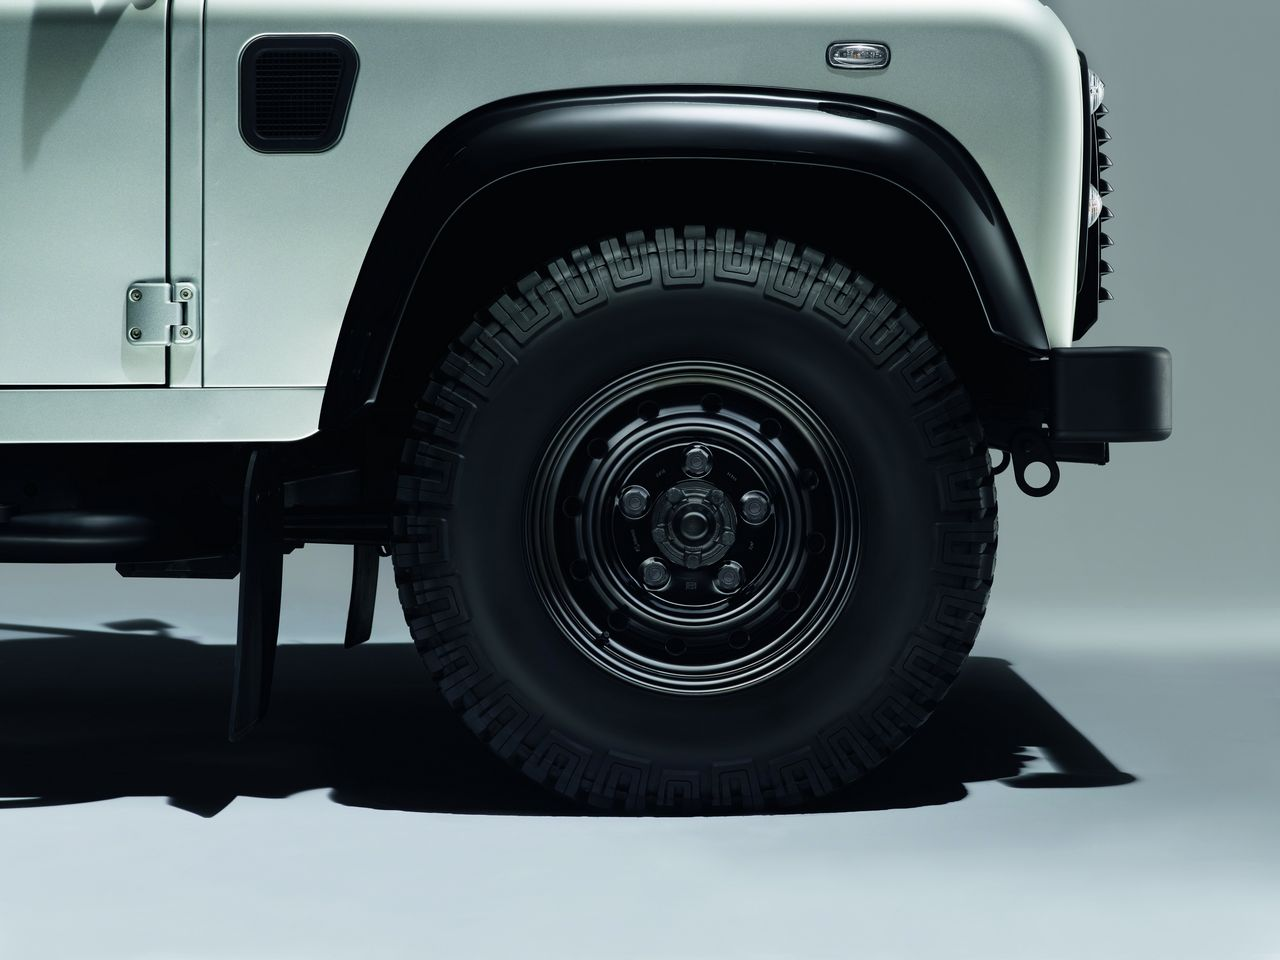 anteprima-salone-di-ginevra-2014-land-rover-defender-black-pack-e-silver-pack-special-edition-0-100_6